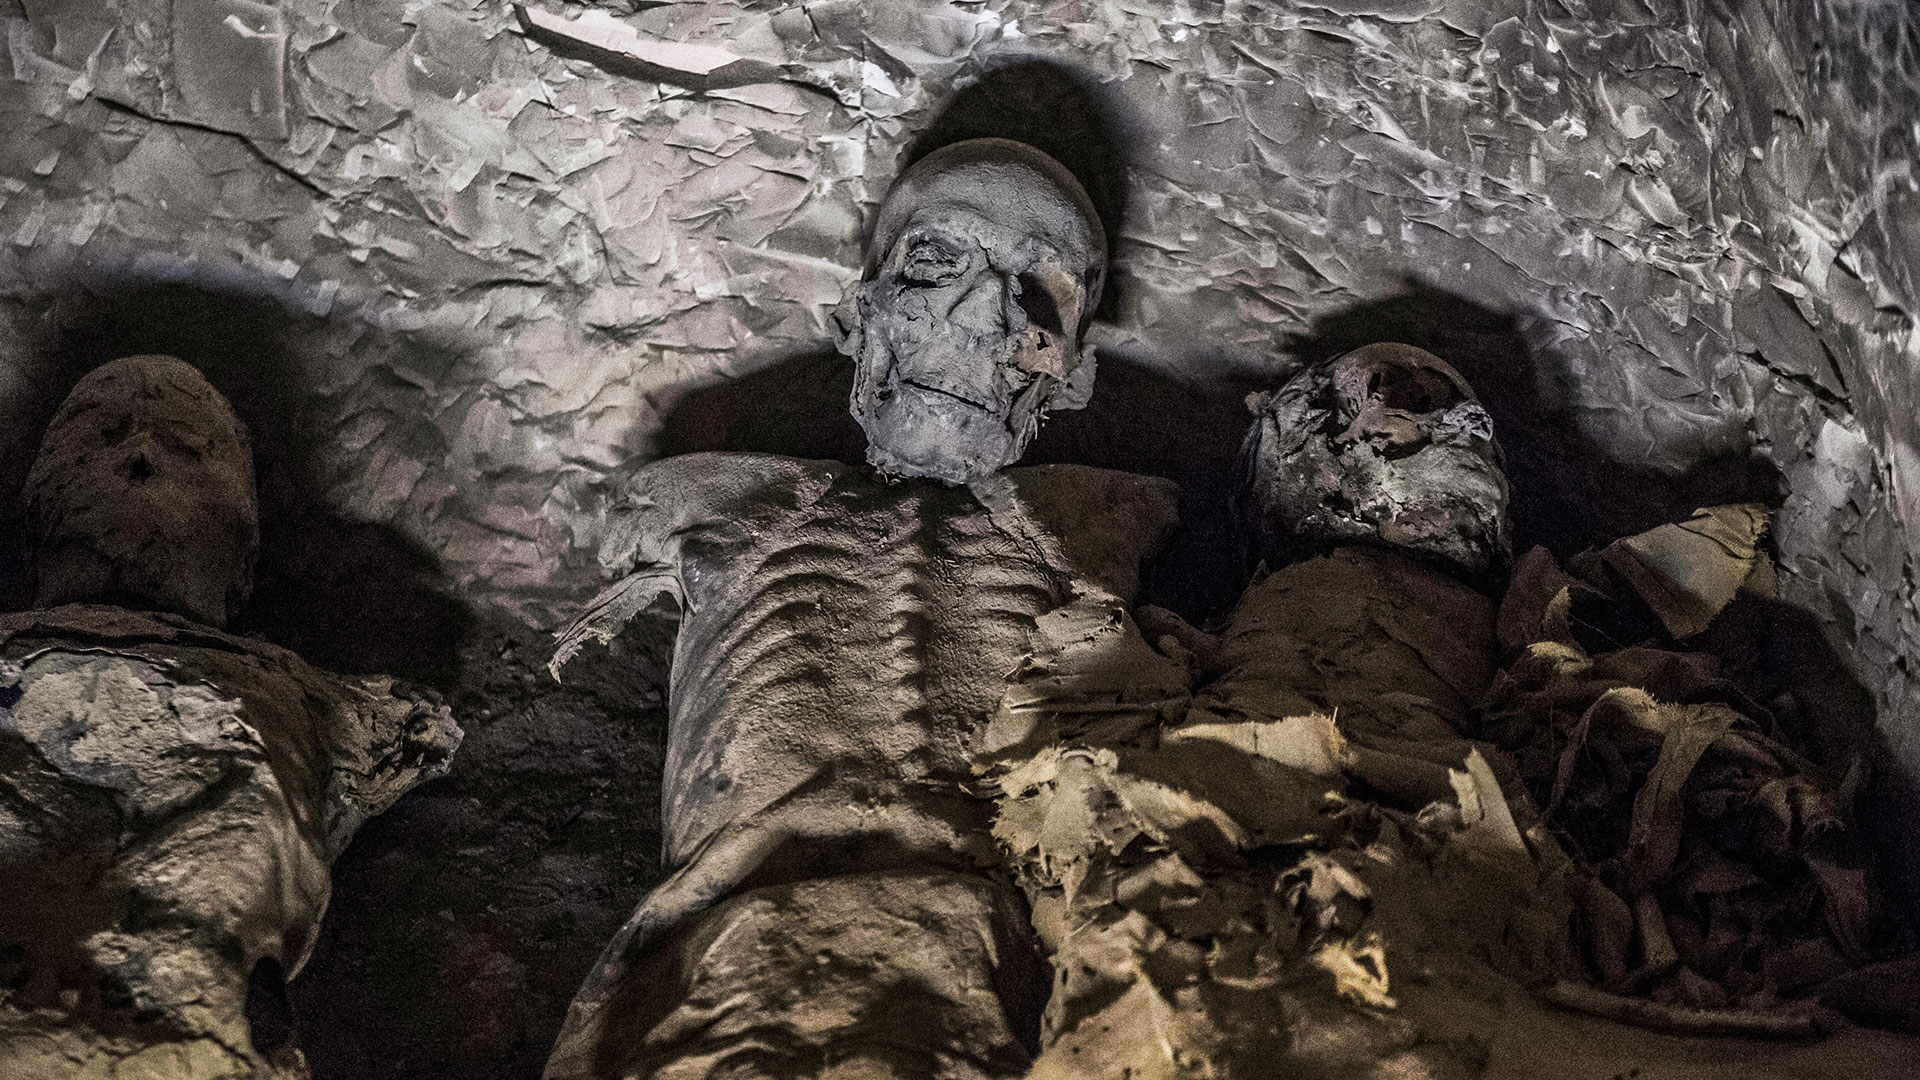 This picture taken on November 24, 2018 shows a group of mummies stacked together at the site of Tomb TT28, which was discovered by an Egyptian archaelogical mission at Al-Assasif necropolis on the west bank of the Nile north of the southern Egyptian city of Luxor. - Located between the royal tombs at the Valley of the Queens and the Valley of the Kings, the Al-Assasif necropolis is the burial site of nobles and senior officials close to the pharaohs. (Photo by Khaled DESOUKI / AFP)